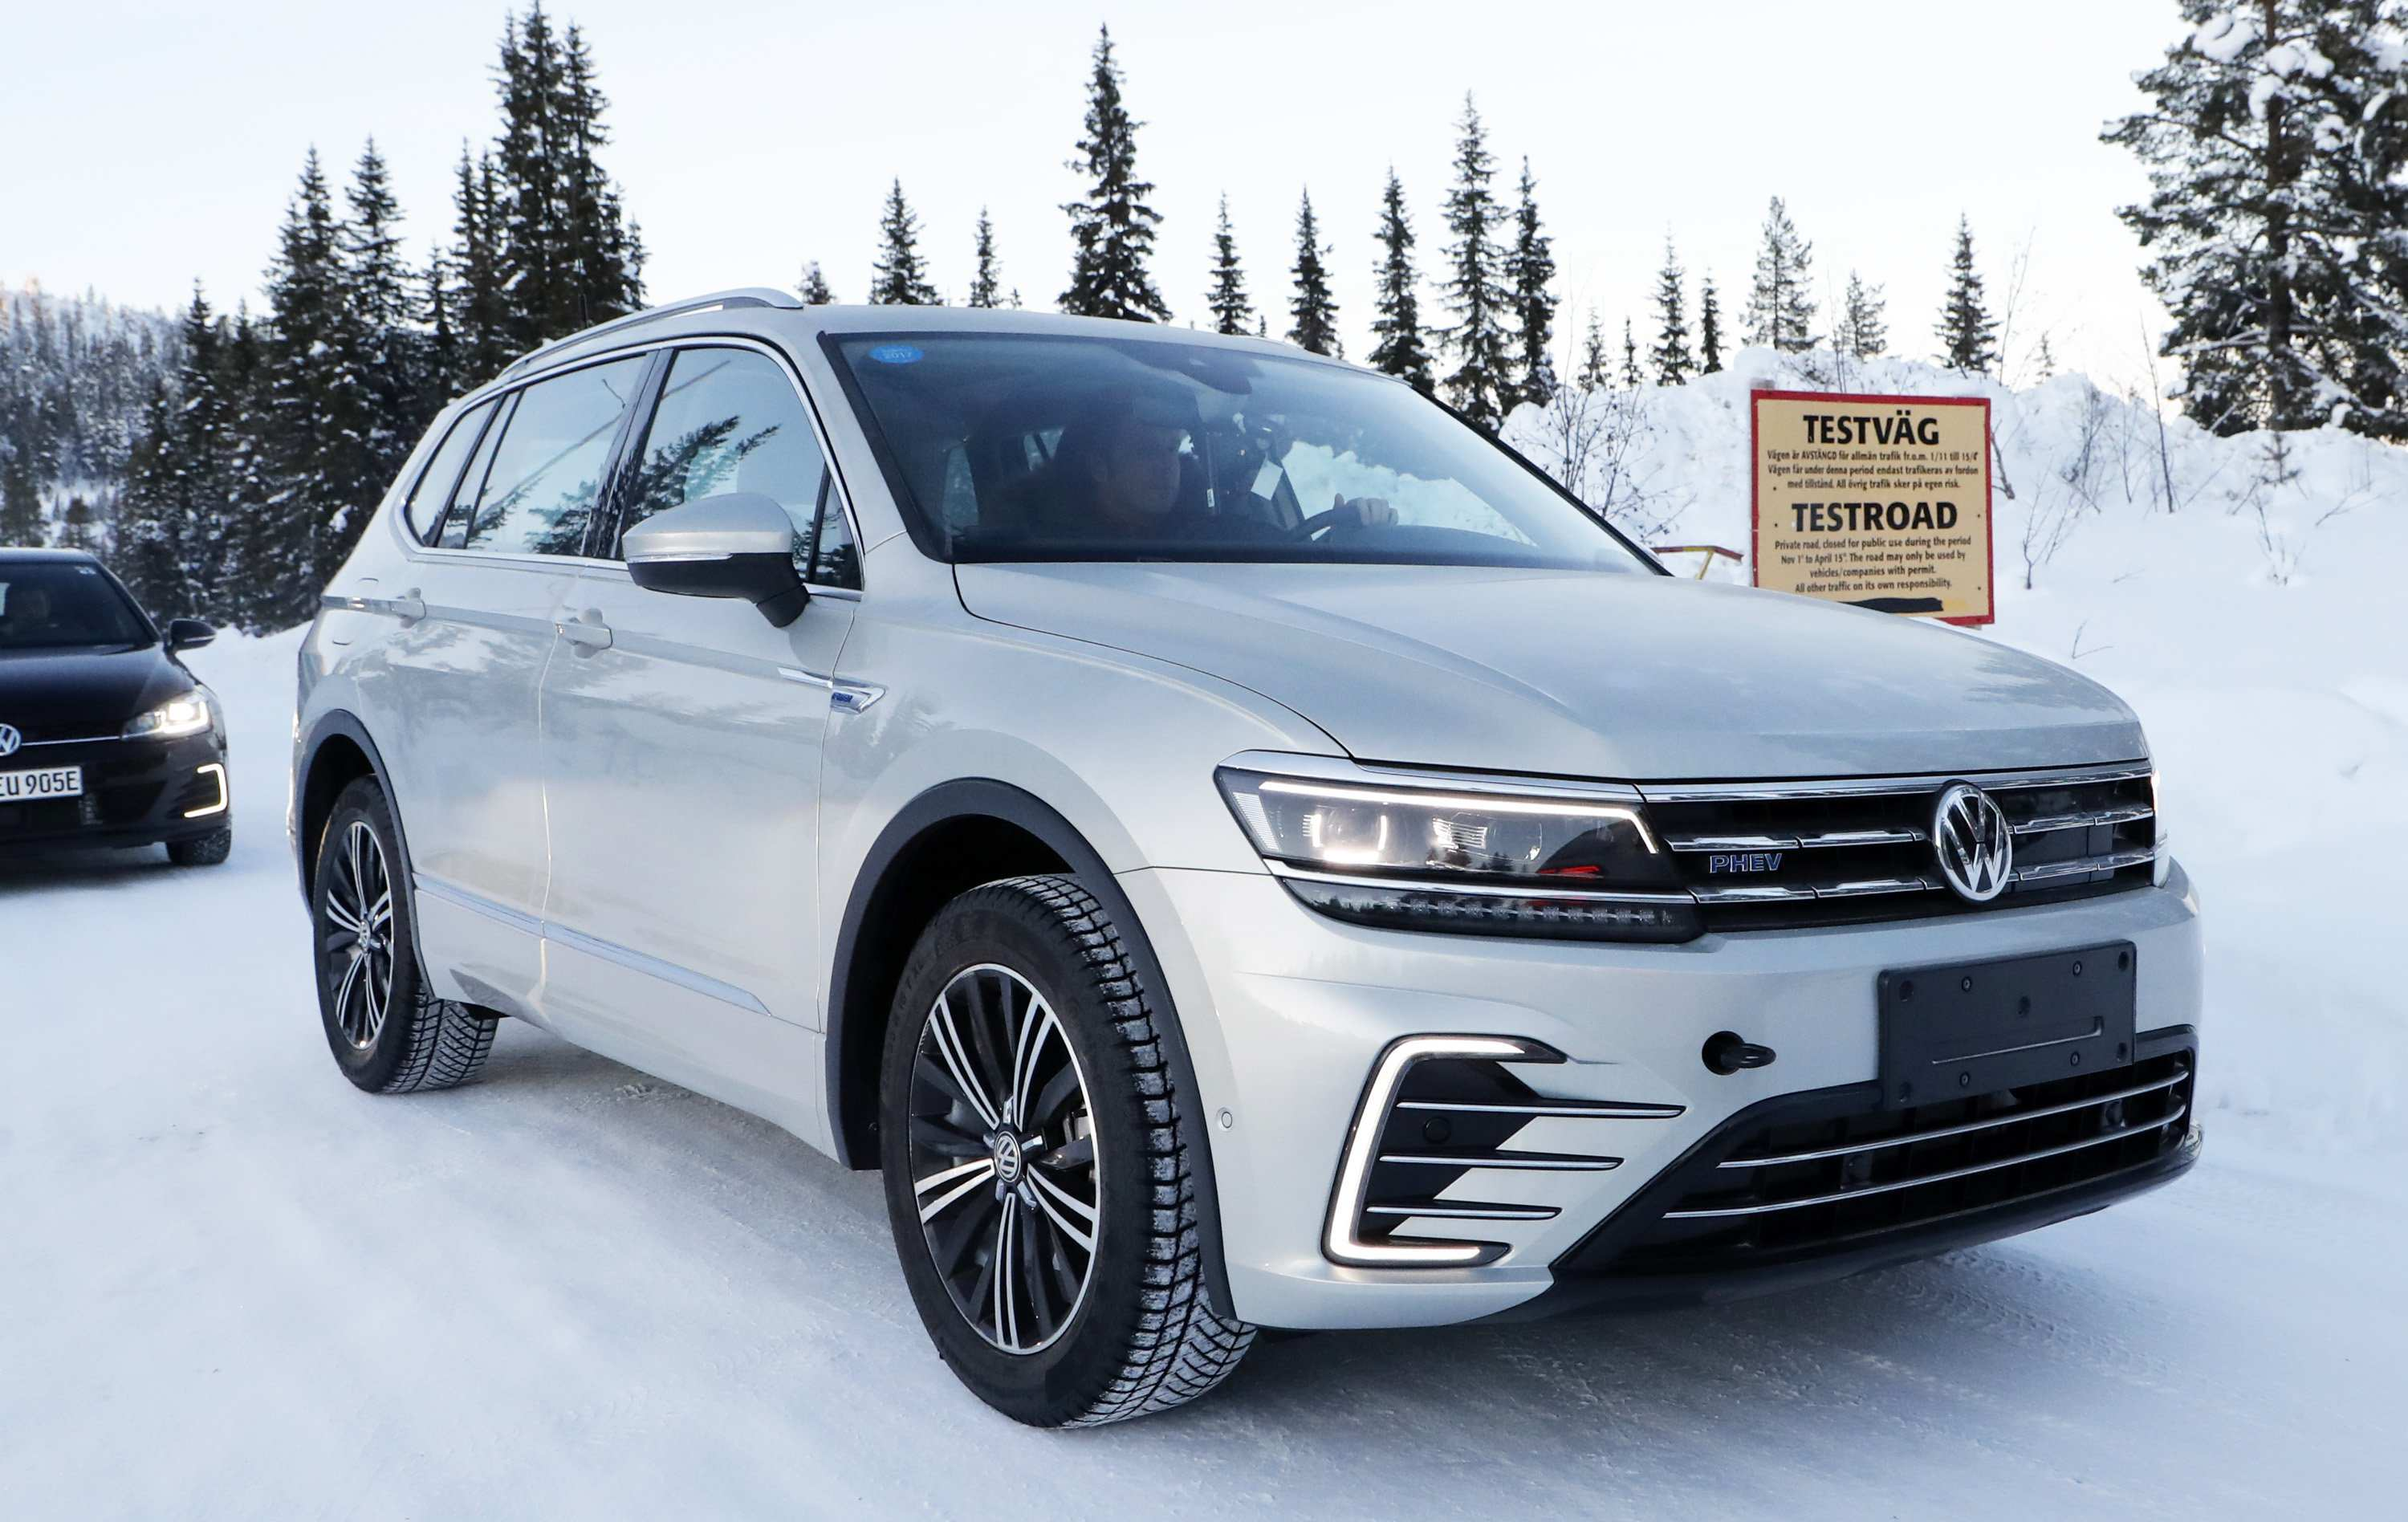 74 The Best Volkswagen 2019 Tiguan Concept Exterior with Best Volkswagen 2019 Tiguan Concept